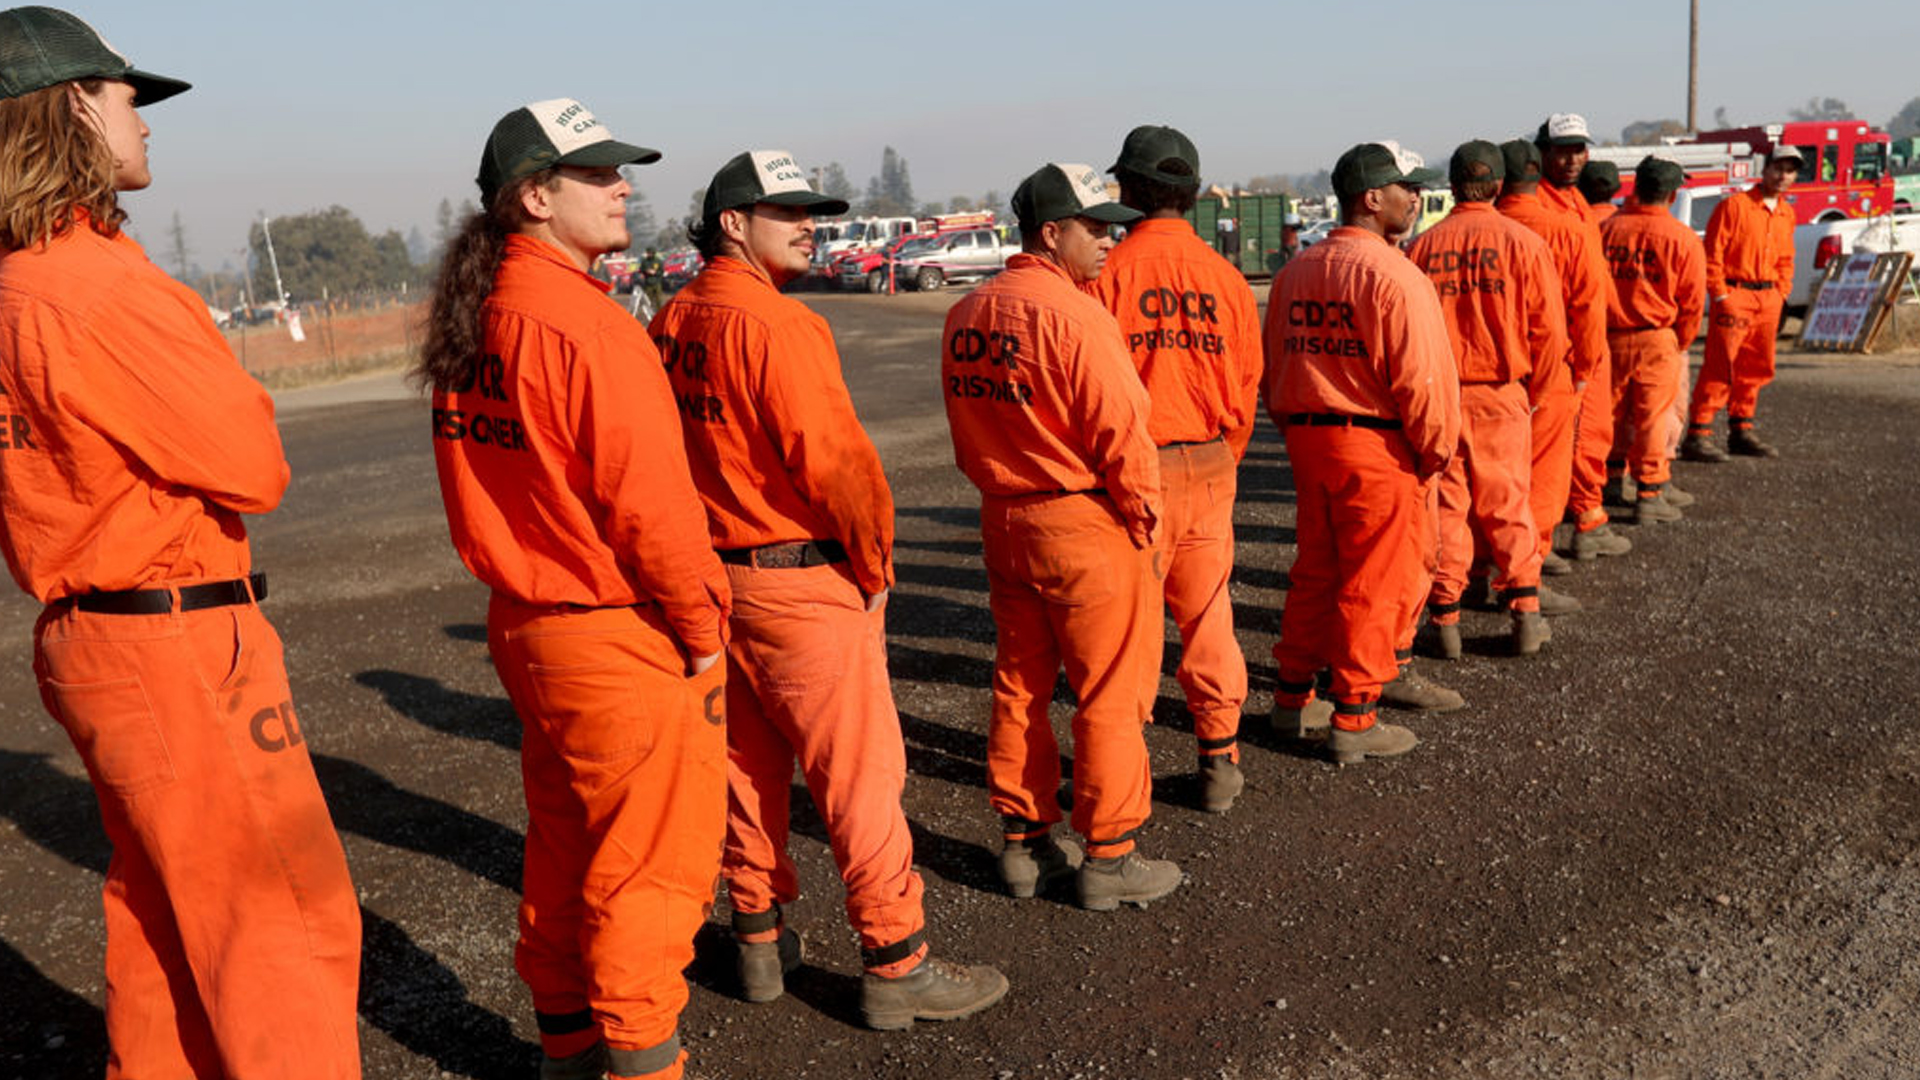 SANTA ROSA, CA: OCTOBER 29: California Department of Corrections inmates from Weott, in Humboldt County, line up as they await their deployment at the Kincade Fire Emergency Operations Center (EOC) at the Sonoma County Fairgrounds in Santa Rosa, Calif., on Tuesday, Oct. 29, 2019. (Photo by Jane Tyska/MediaNews Group/The Mercury News via Getty Images)